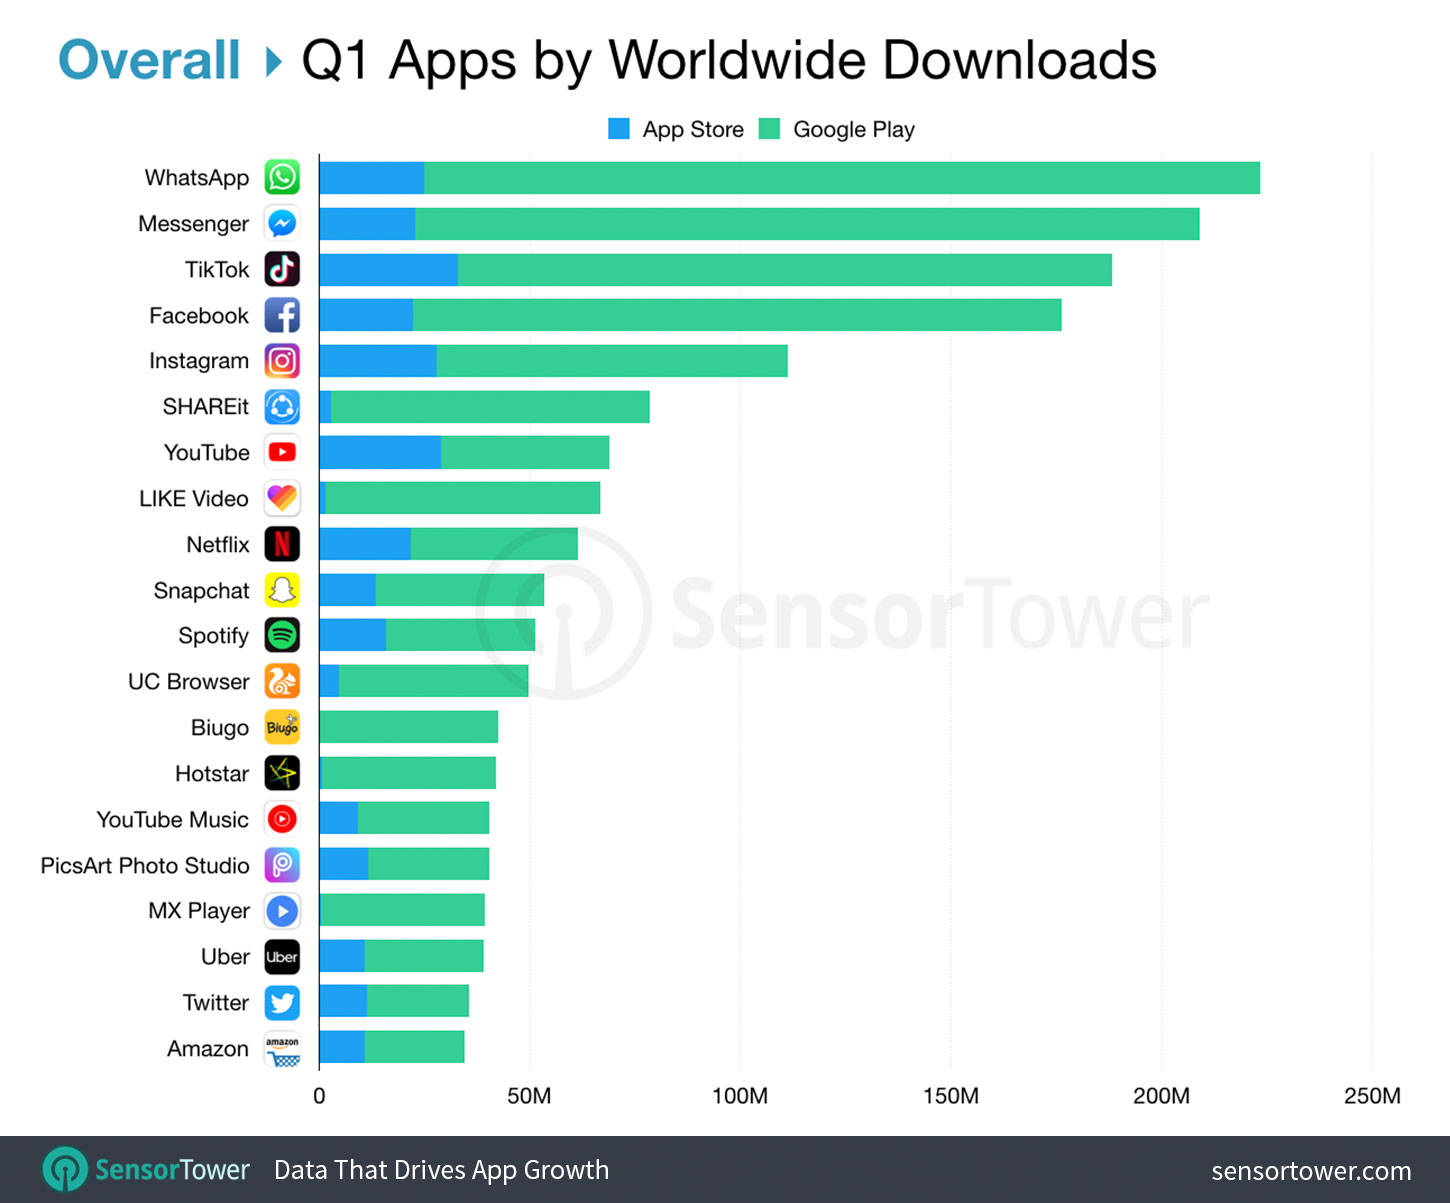 Top Apps Worldwide Overall for Q1 2019